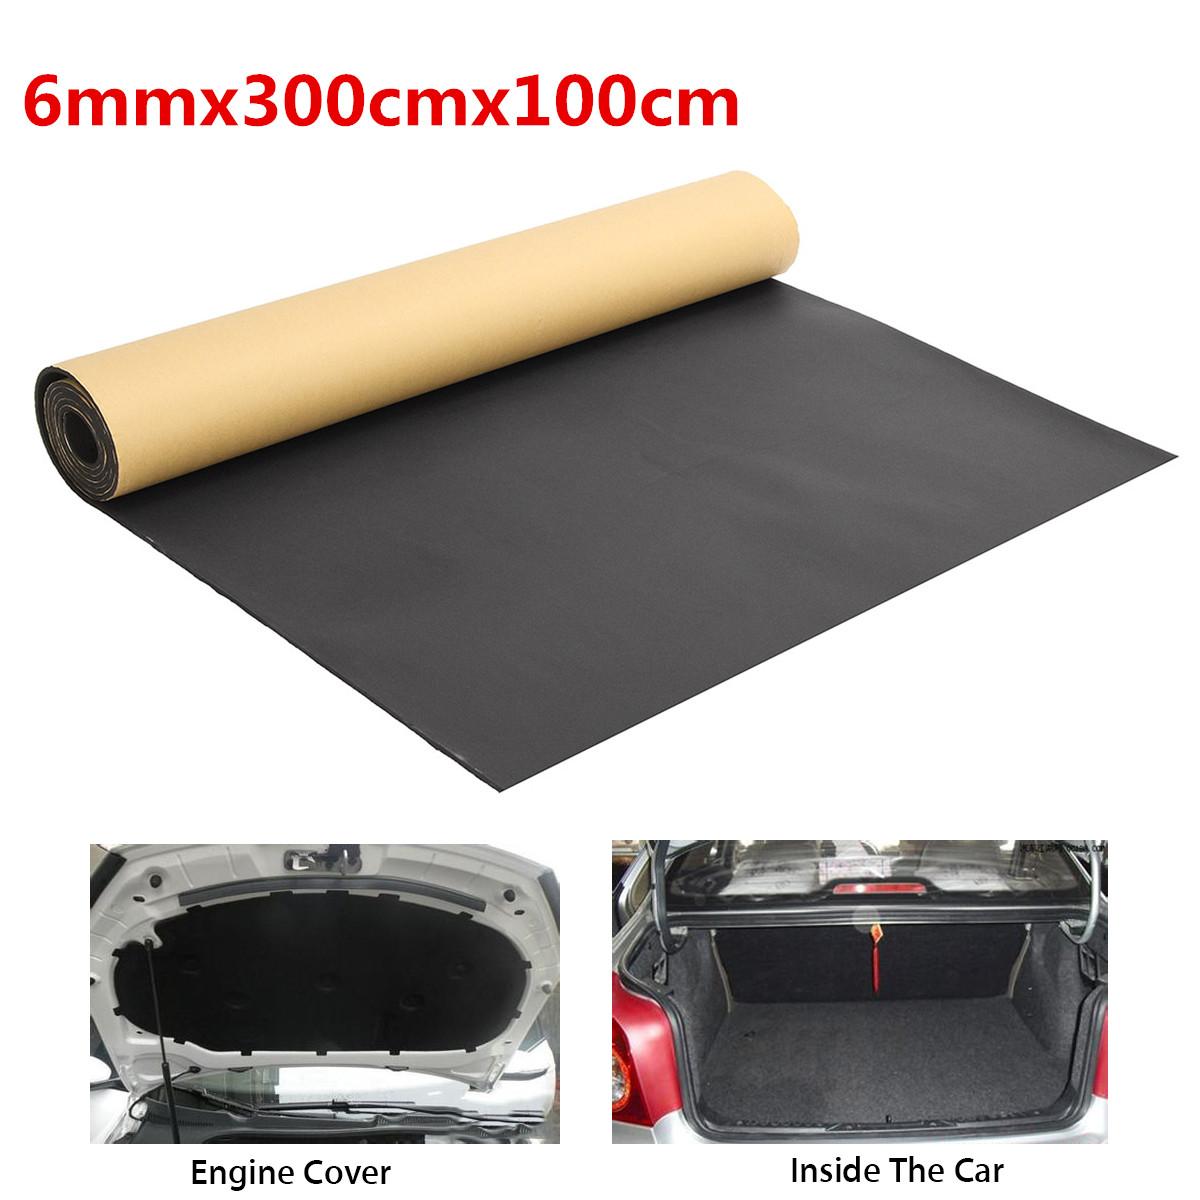 6mm 300x100cm Auto Car Sound Deadening Cotton Automobiles Noise Heat Insulation Mat Closed Foam Pad Interior Accessories6mm 300x100cm Auto Car Sound Deadening Cotton Automobiles Noise Heat Insulation Mat Closed Foam Pad Interior Accessories